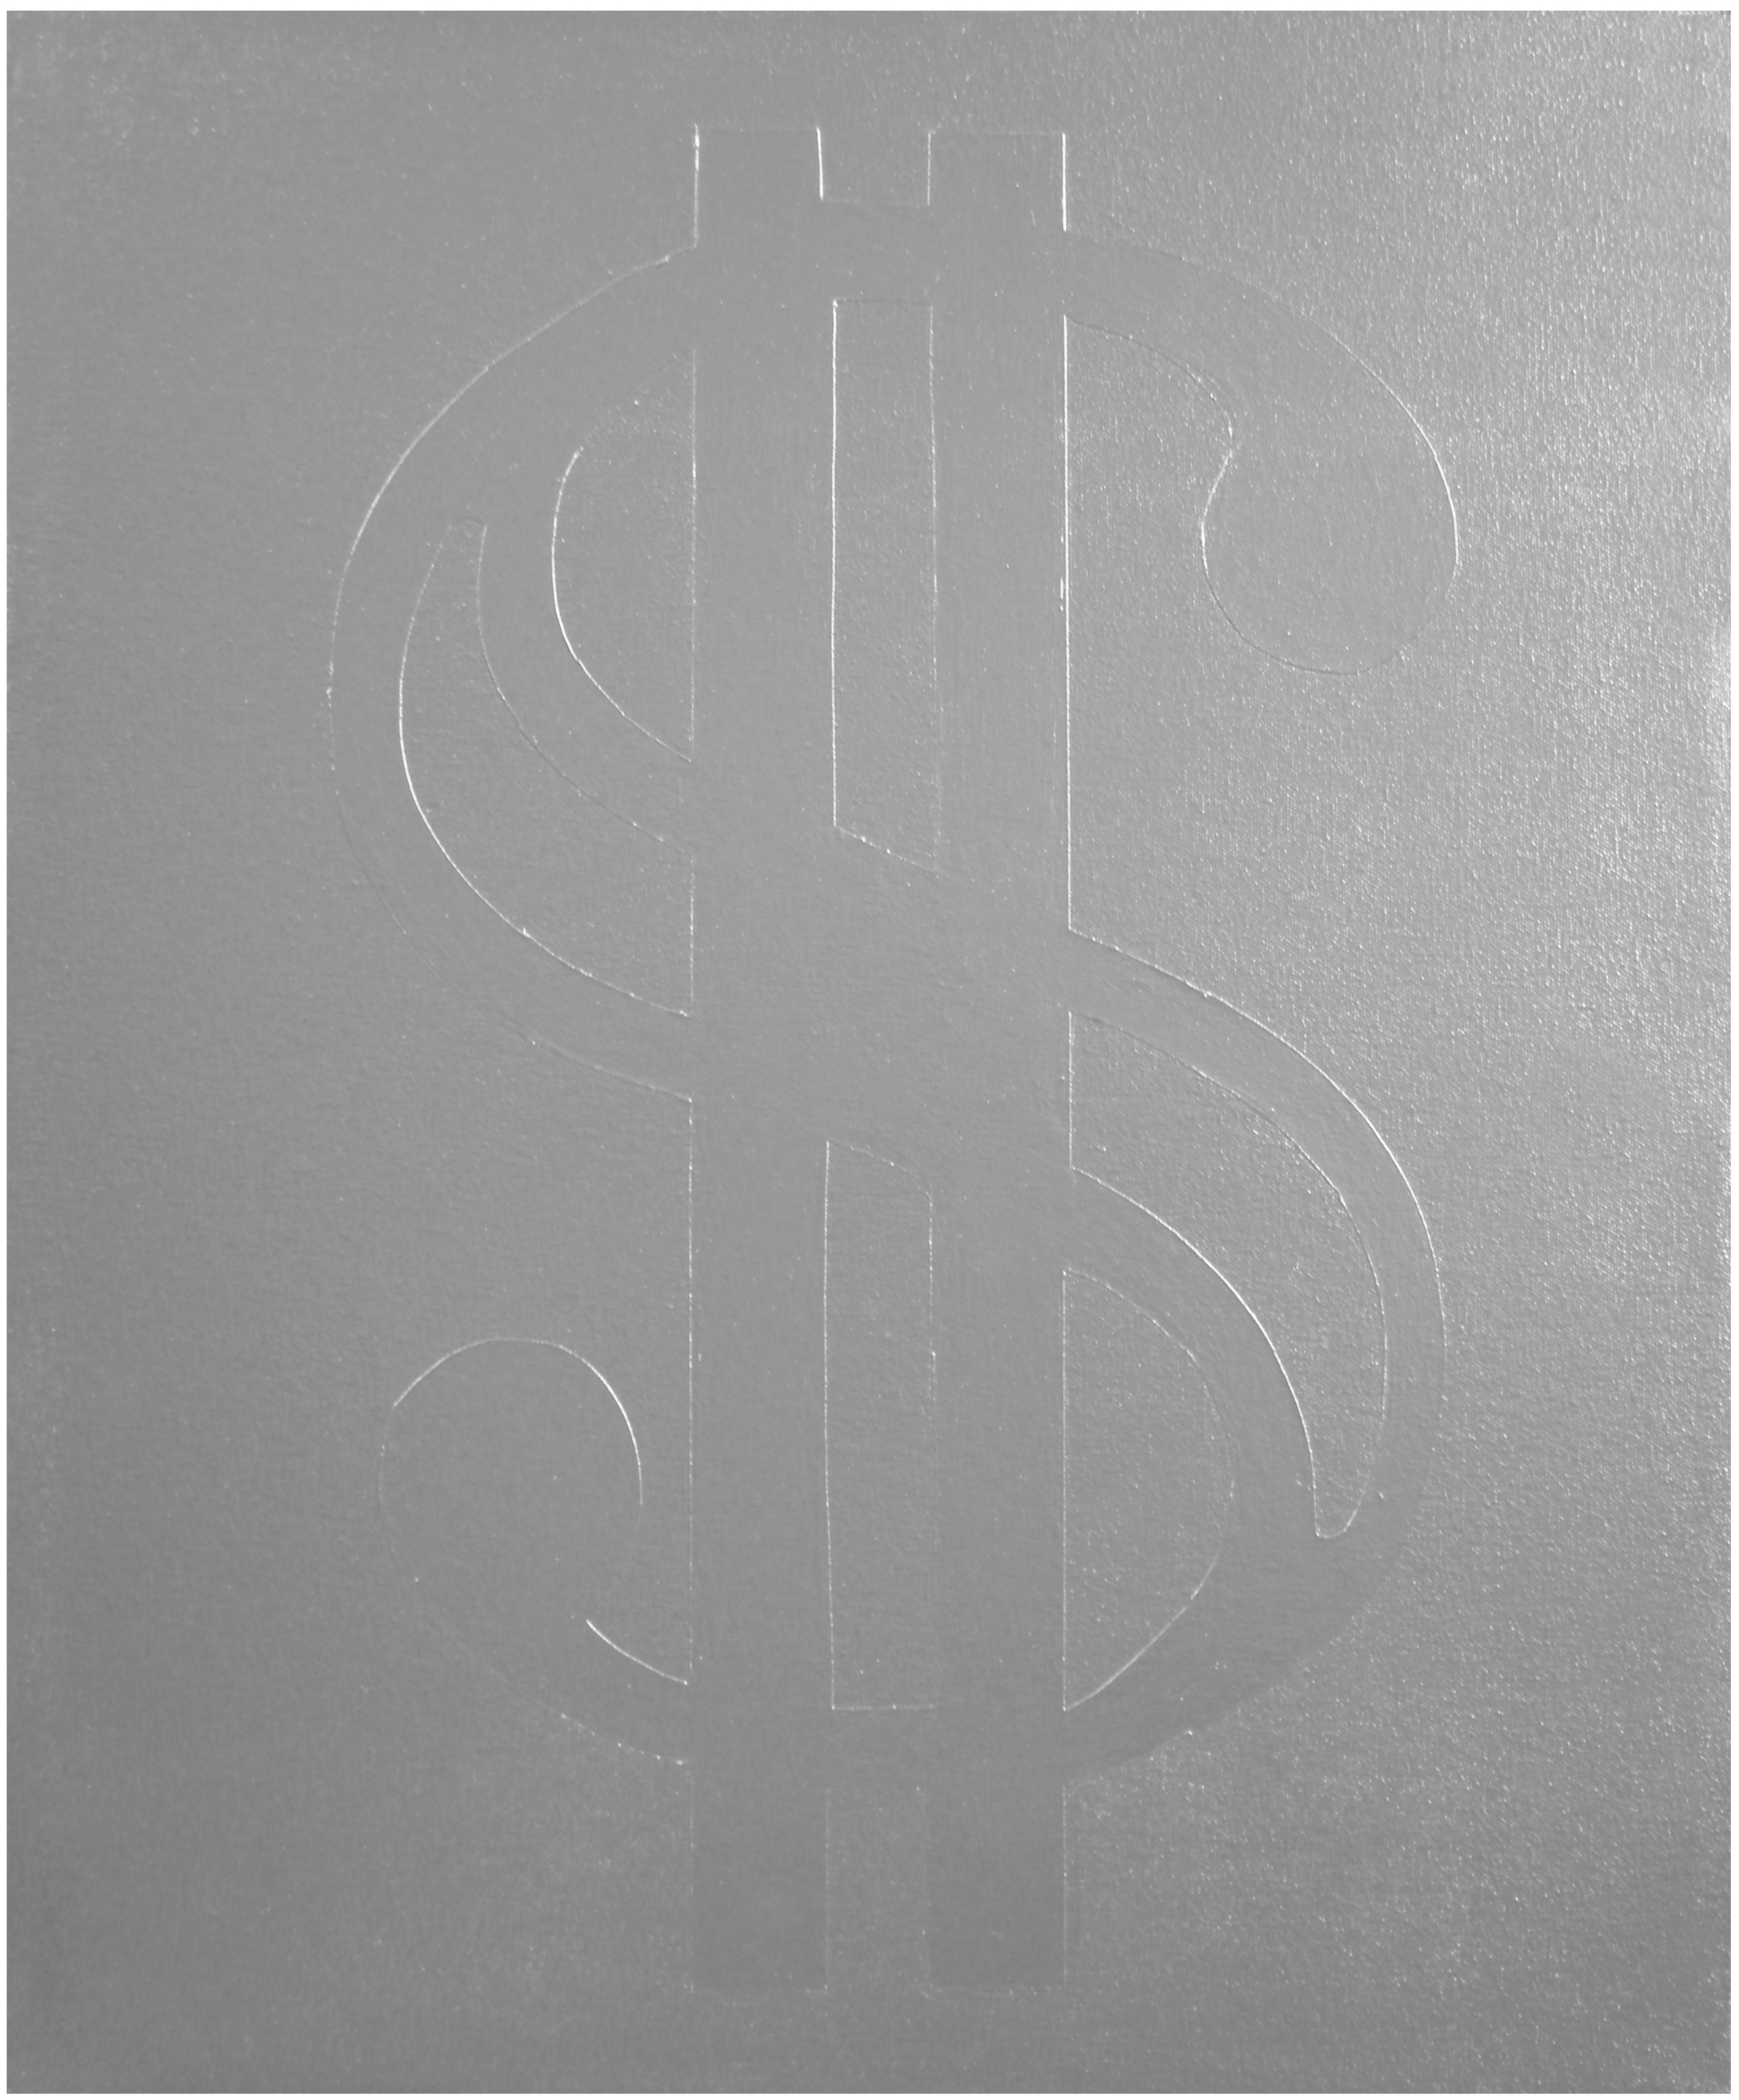 Money  Industrial Paint on Canvas - 24 x 20in - 2011